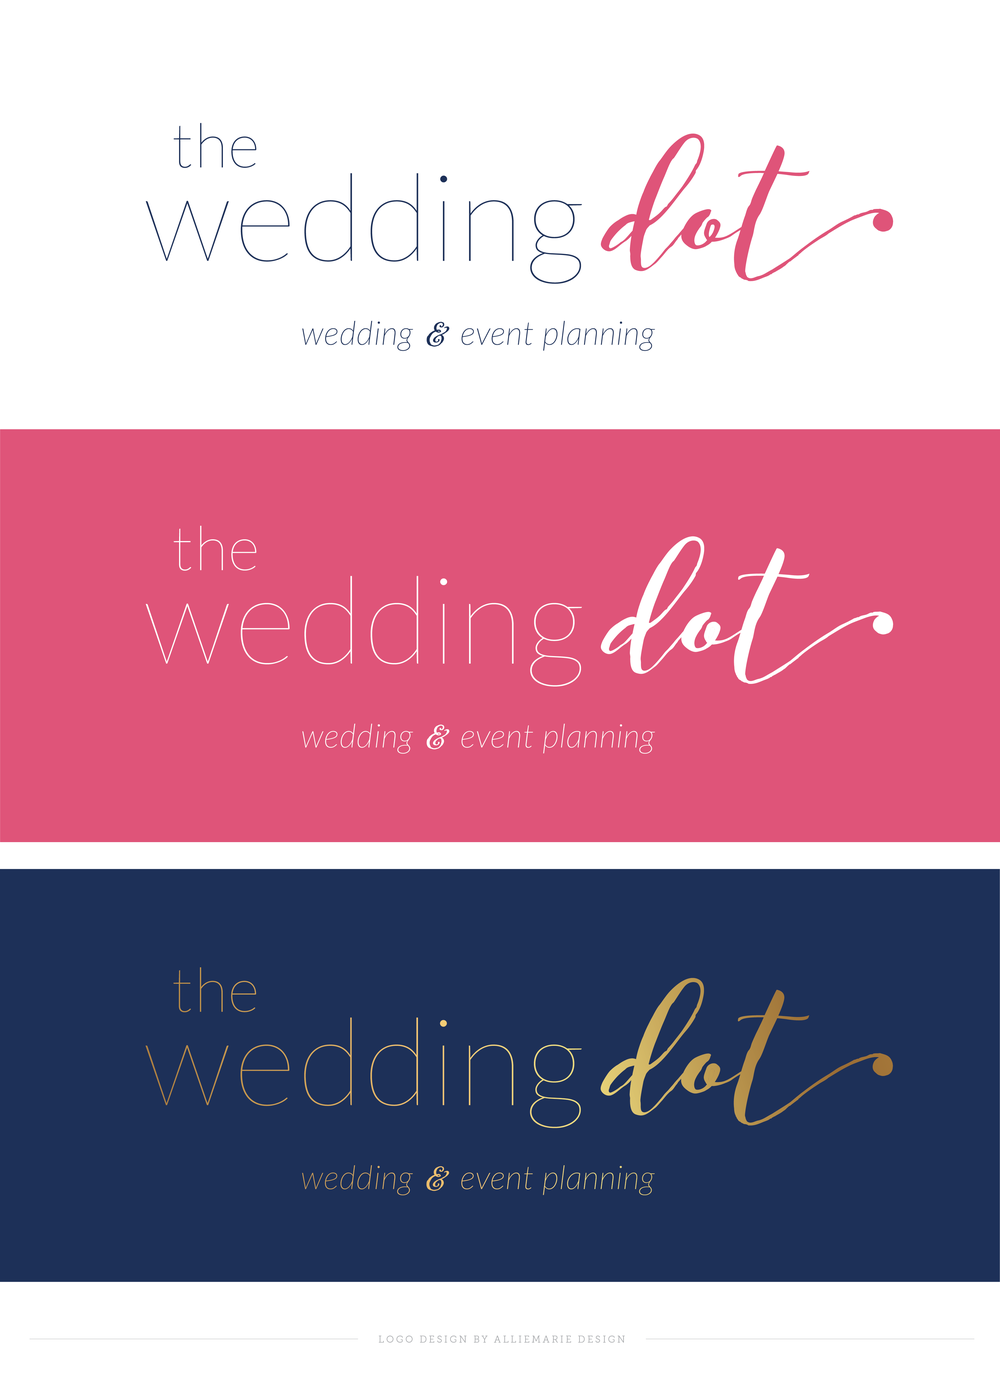 The Wedding Dot, Logo Design by AllieMarie Design